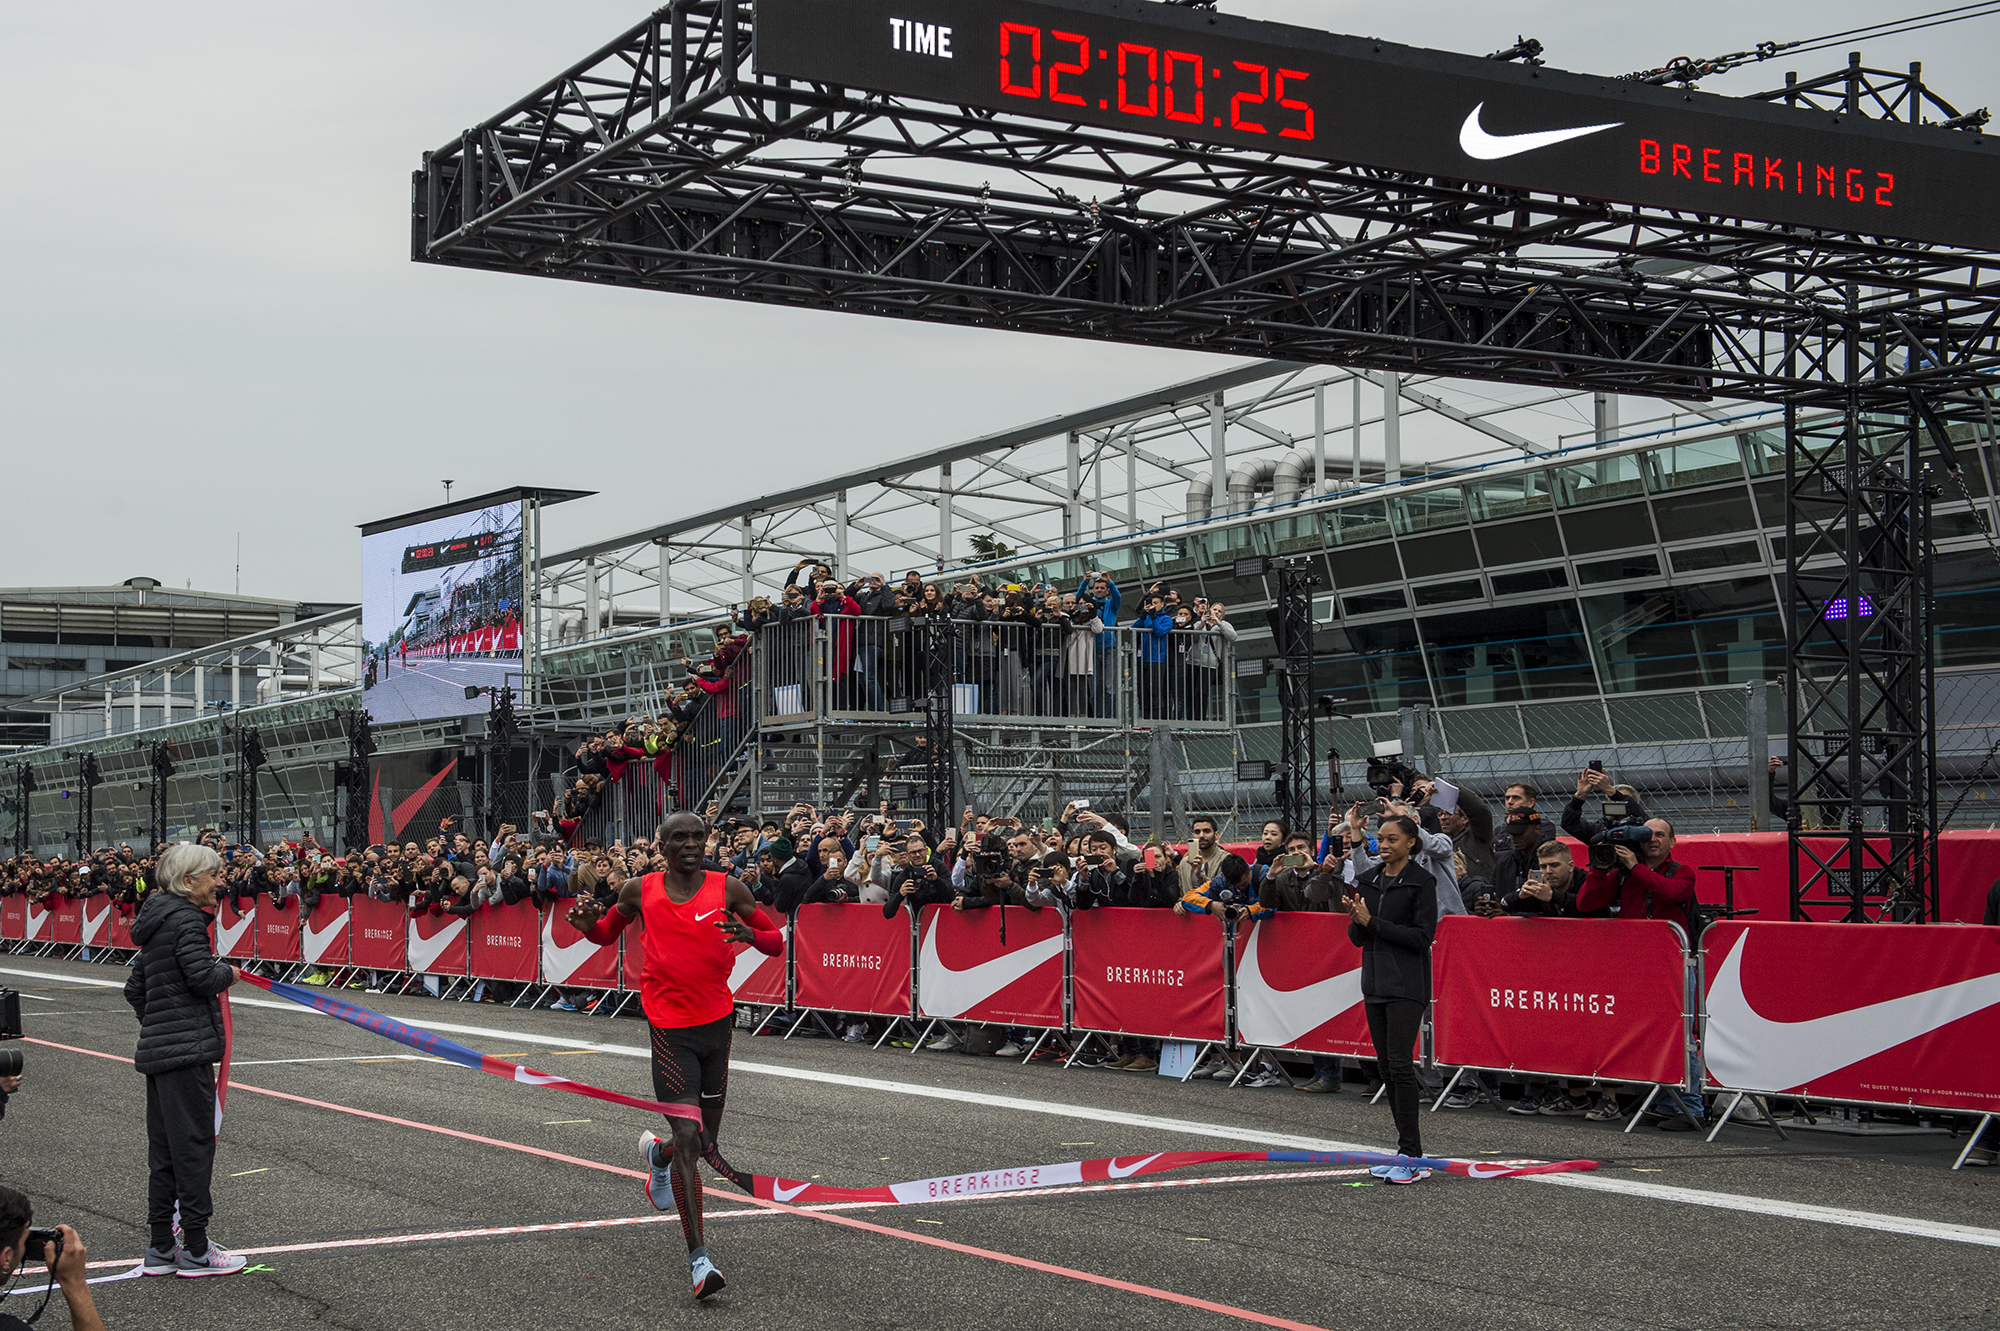 Eliud Kipchoge hitting the finish line at 2:00:25 – by  Andrea Schiliro